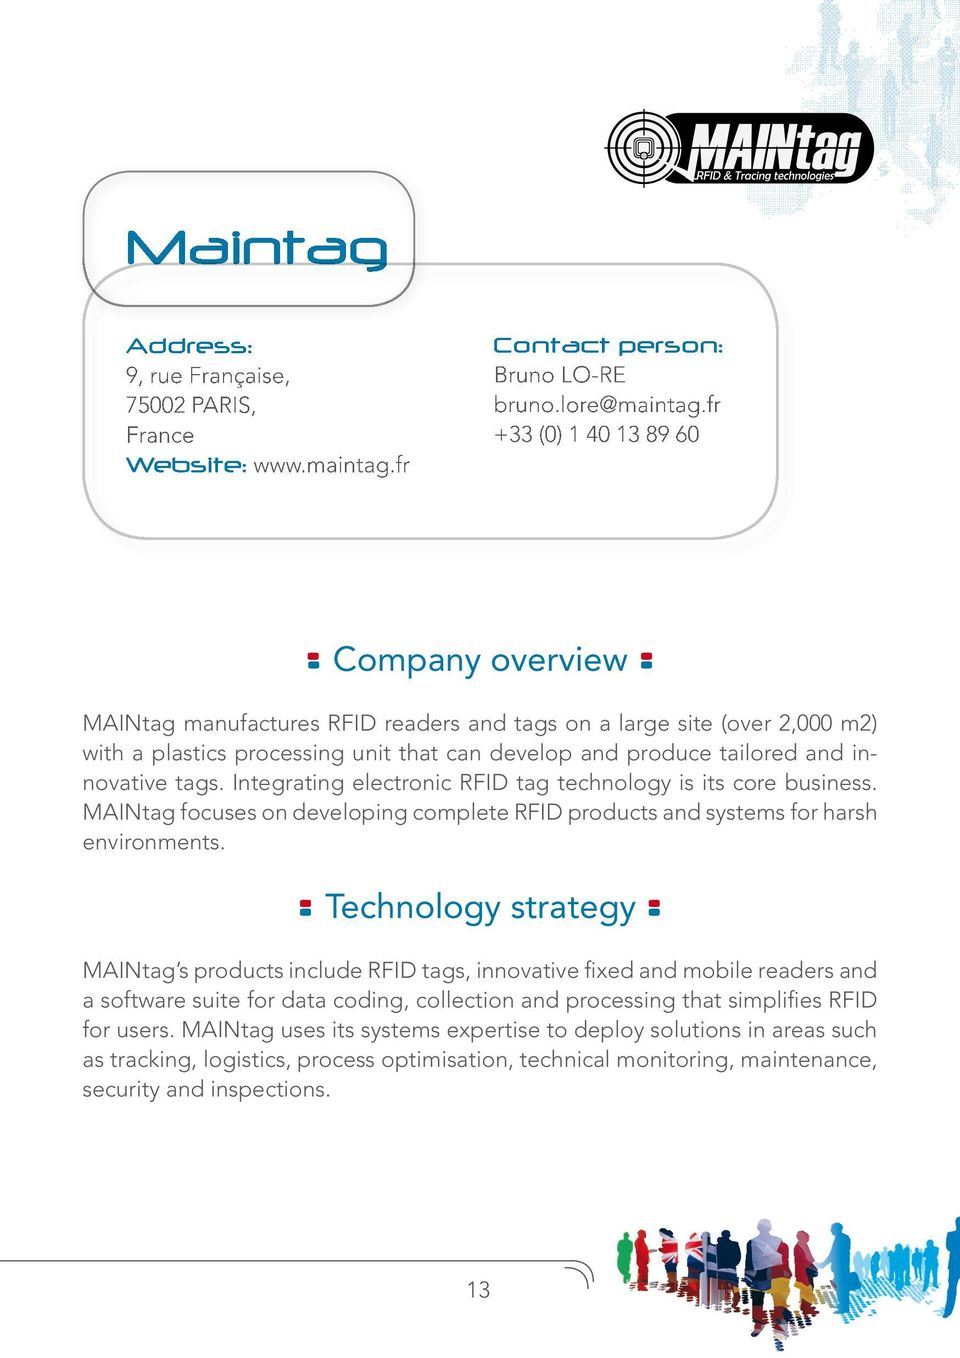 tags. Integrating electronic RFID tag technology is its core business. MAINtag focuses on developing complete RFID products and systems for harsh environments.